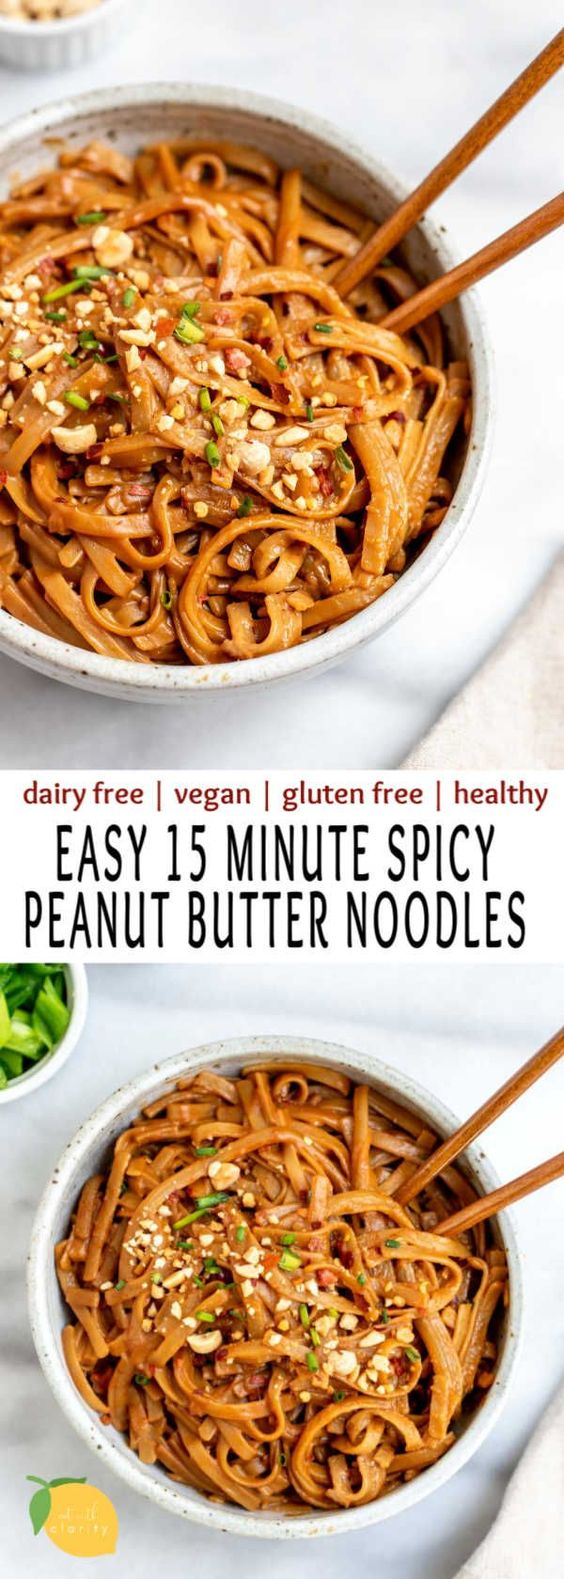 Spicy peanut butter noodles make the best easy vegan dinner recipe. They're healthy, gluten free